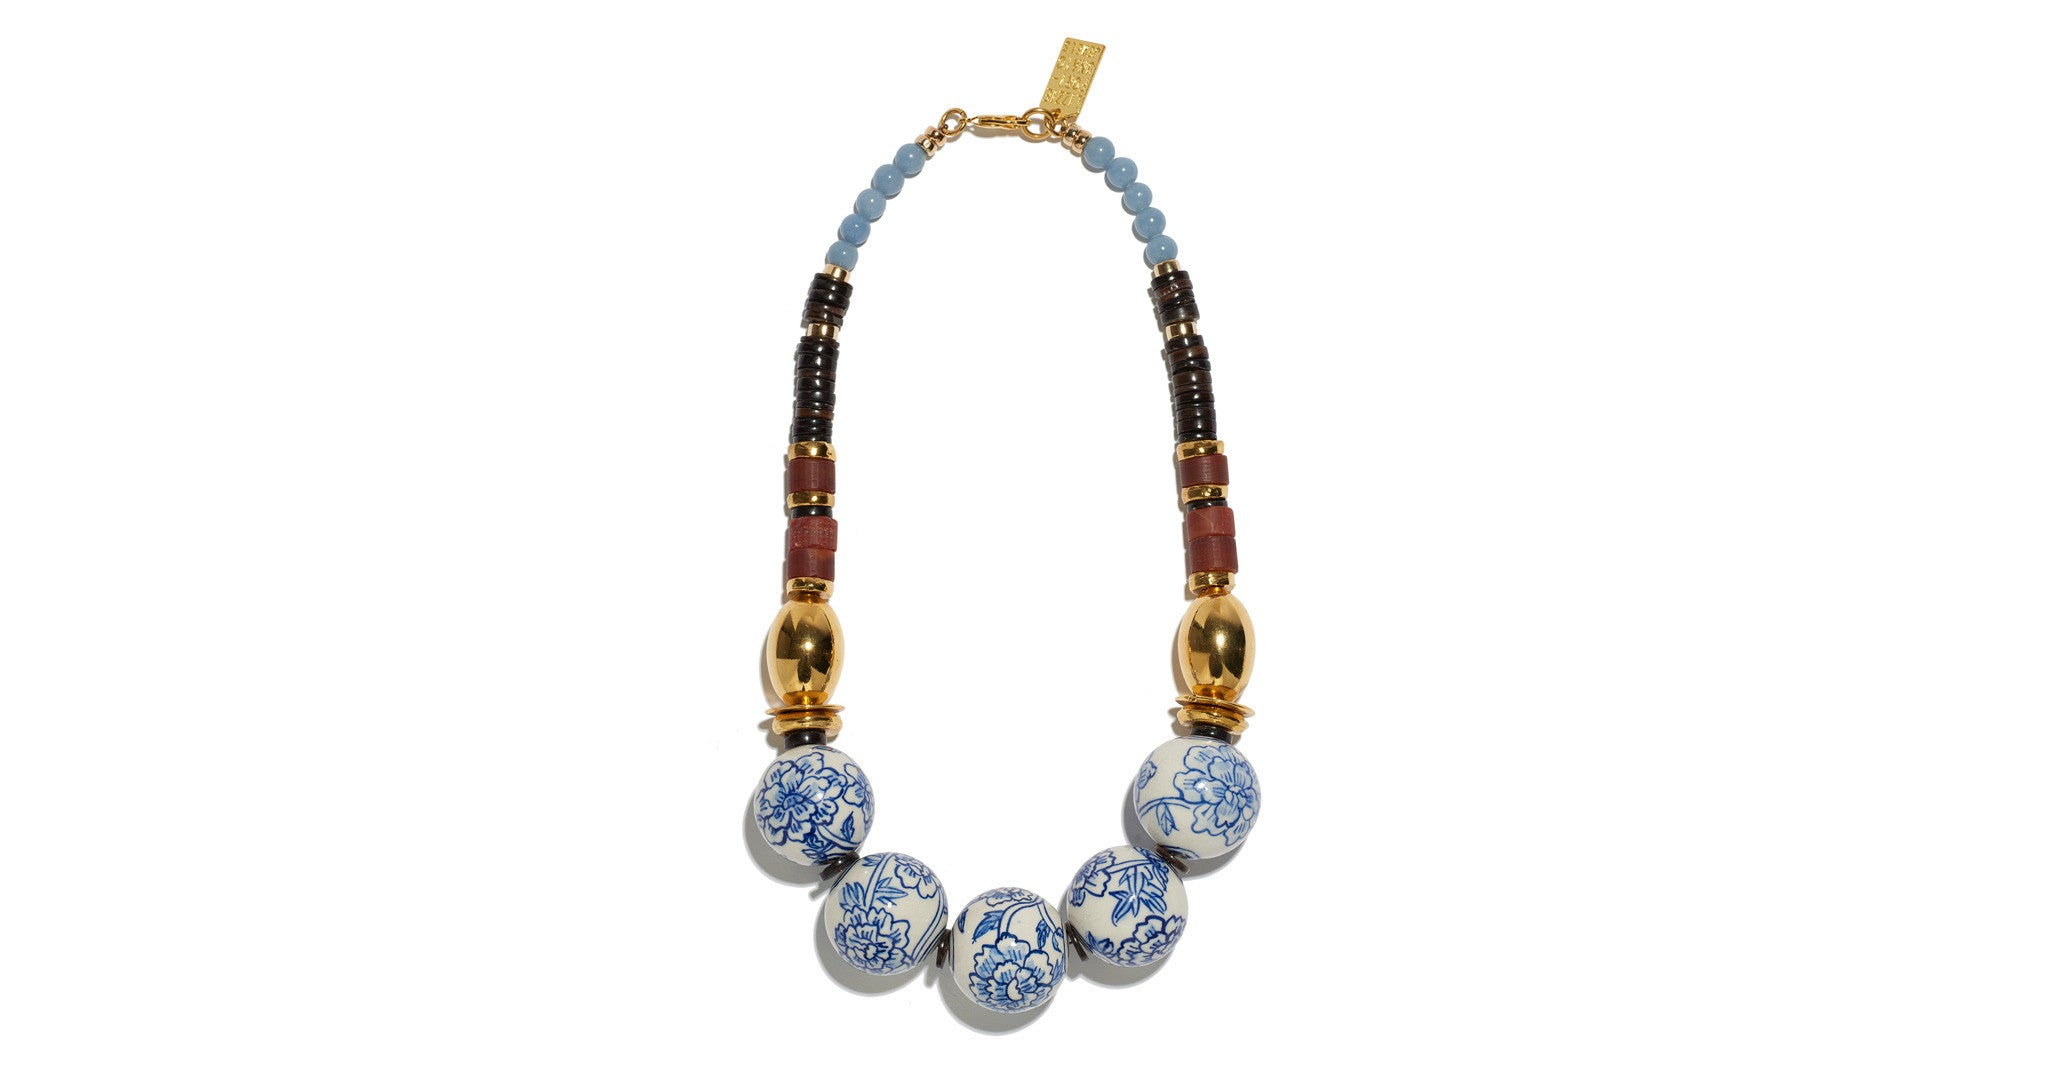 The New Blue III Necklace